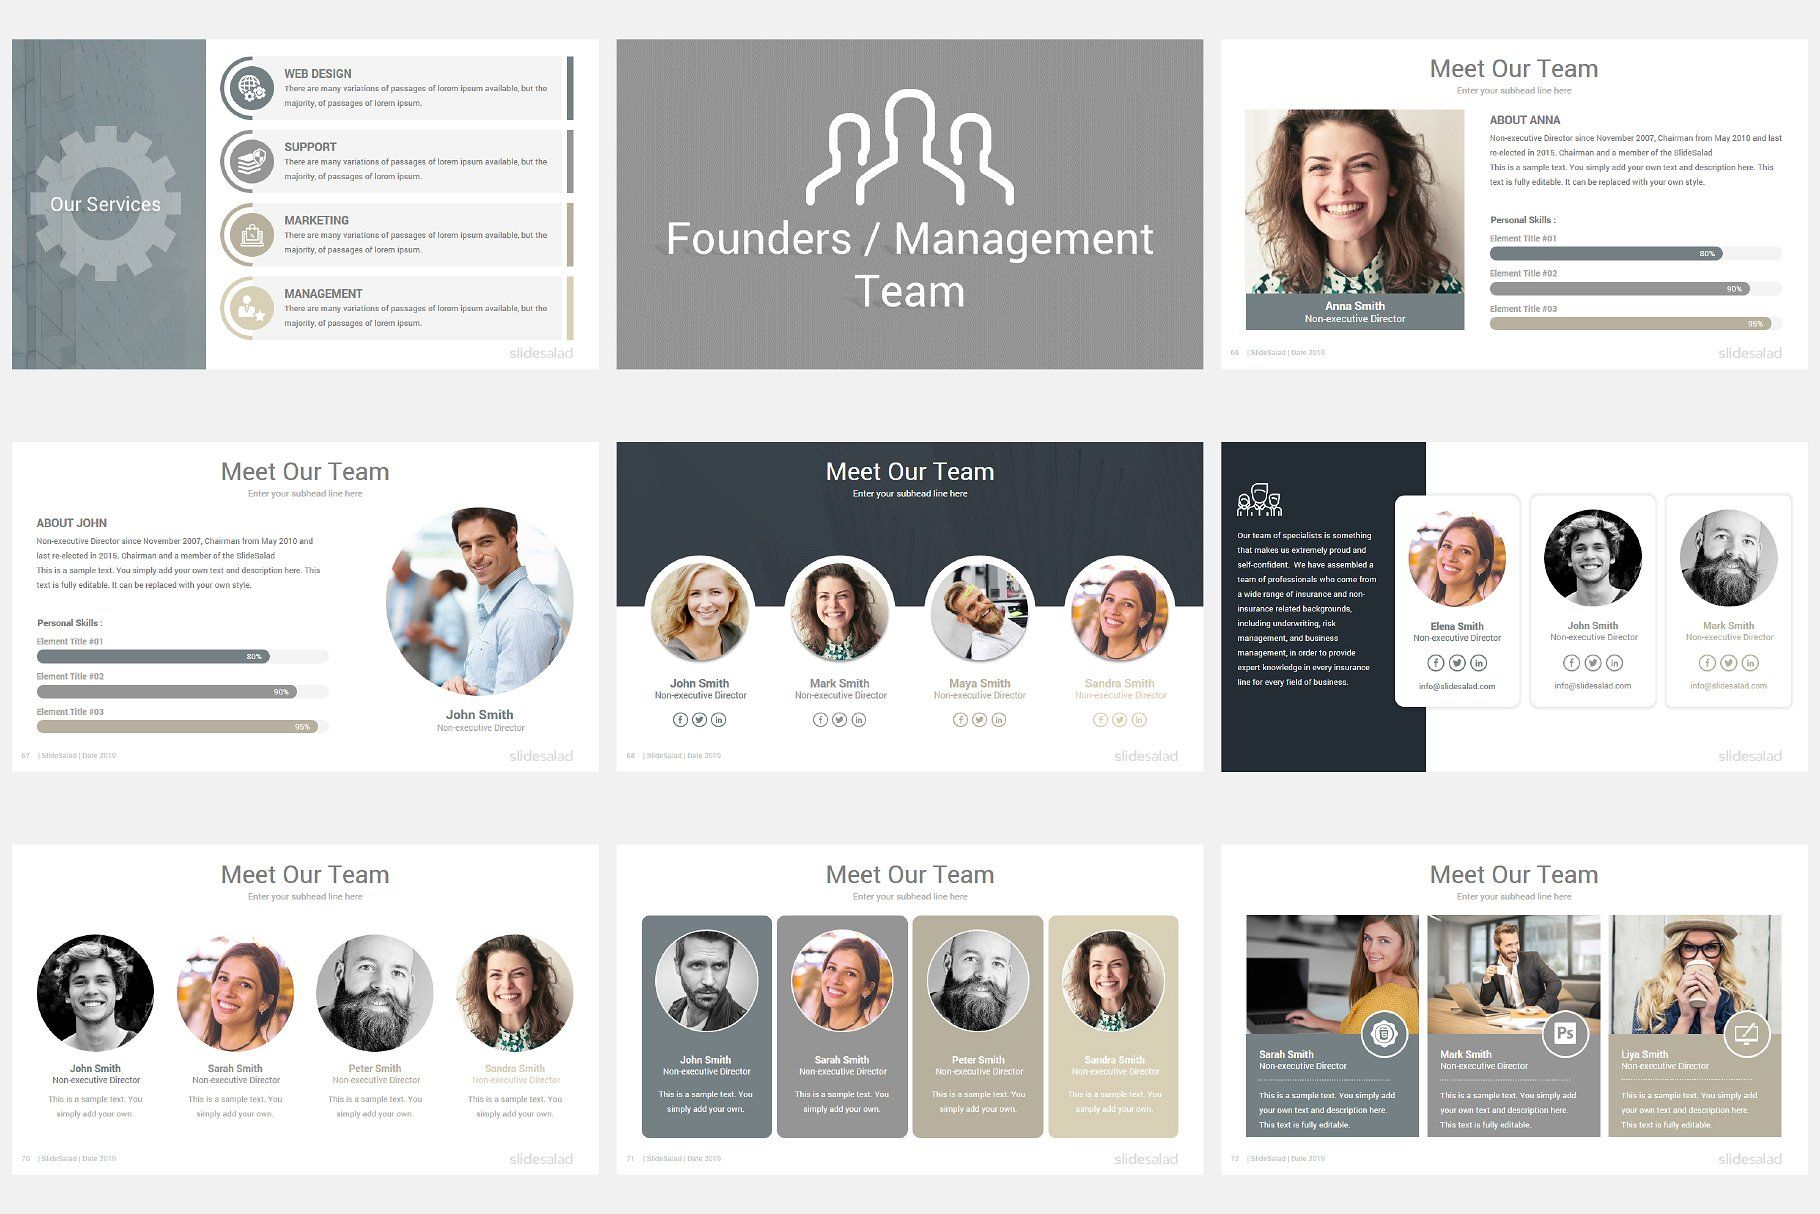 Modern Company Profile PowerPoint tonsfreevectoredit